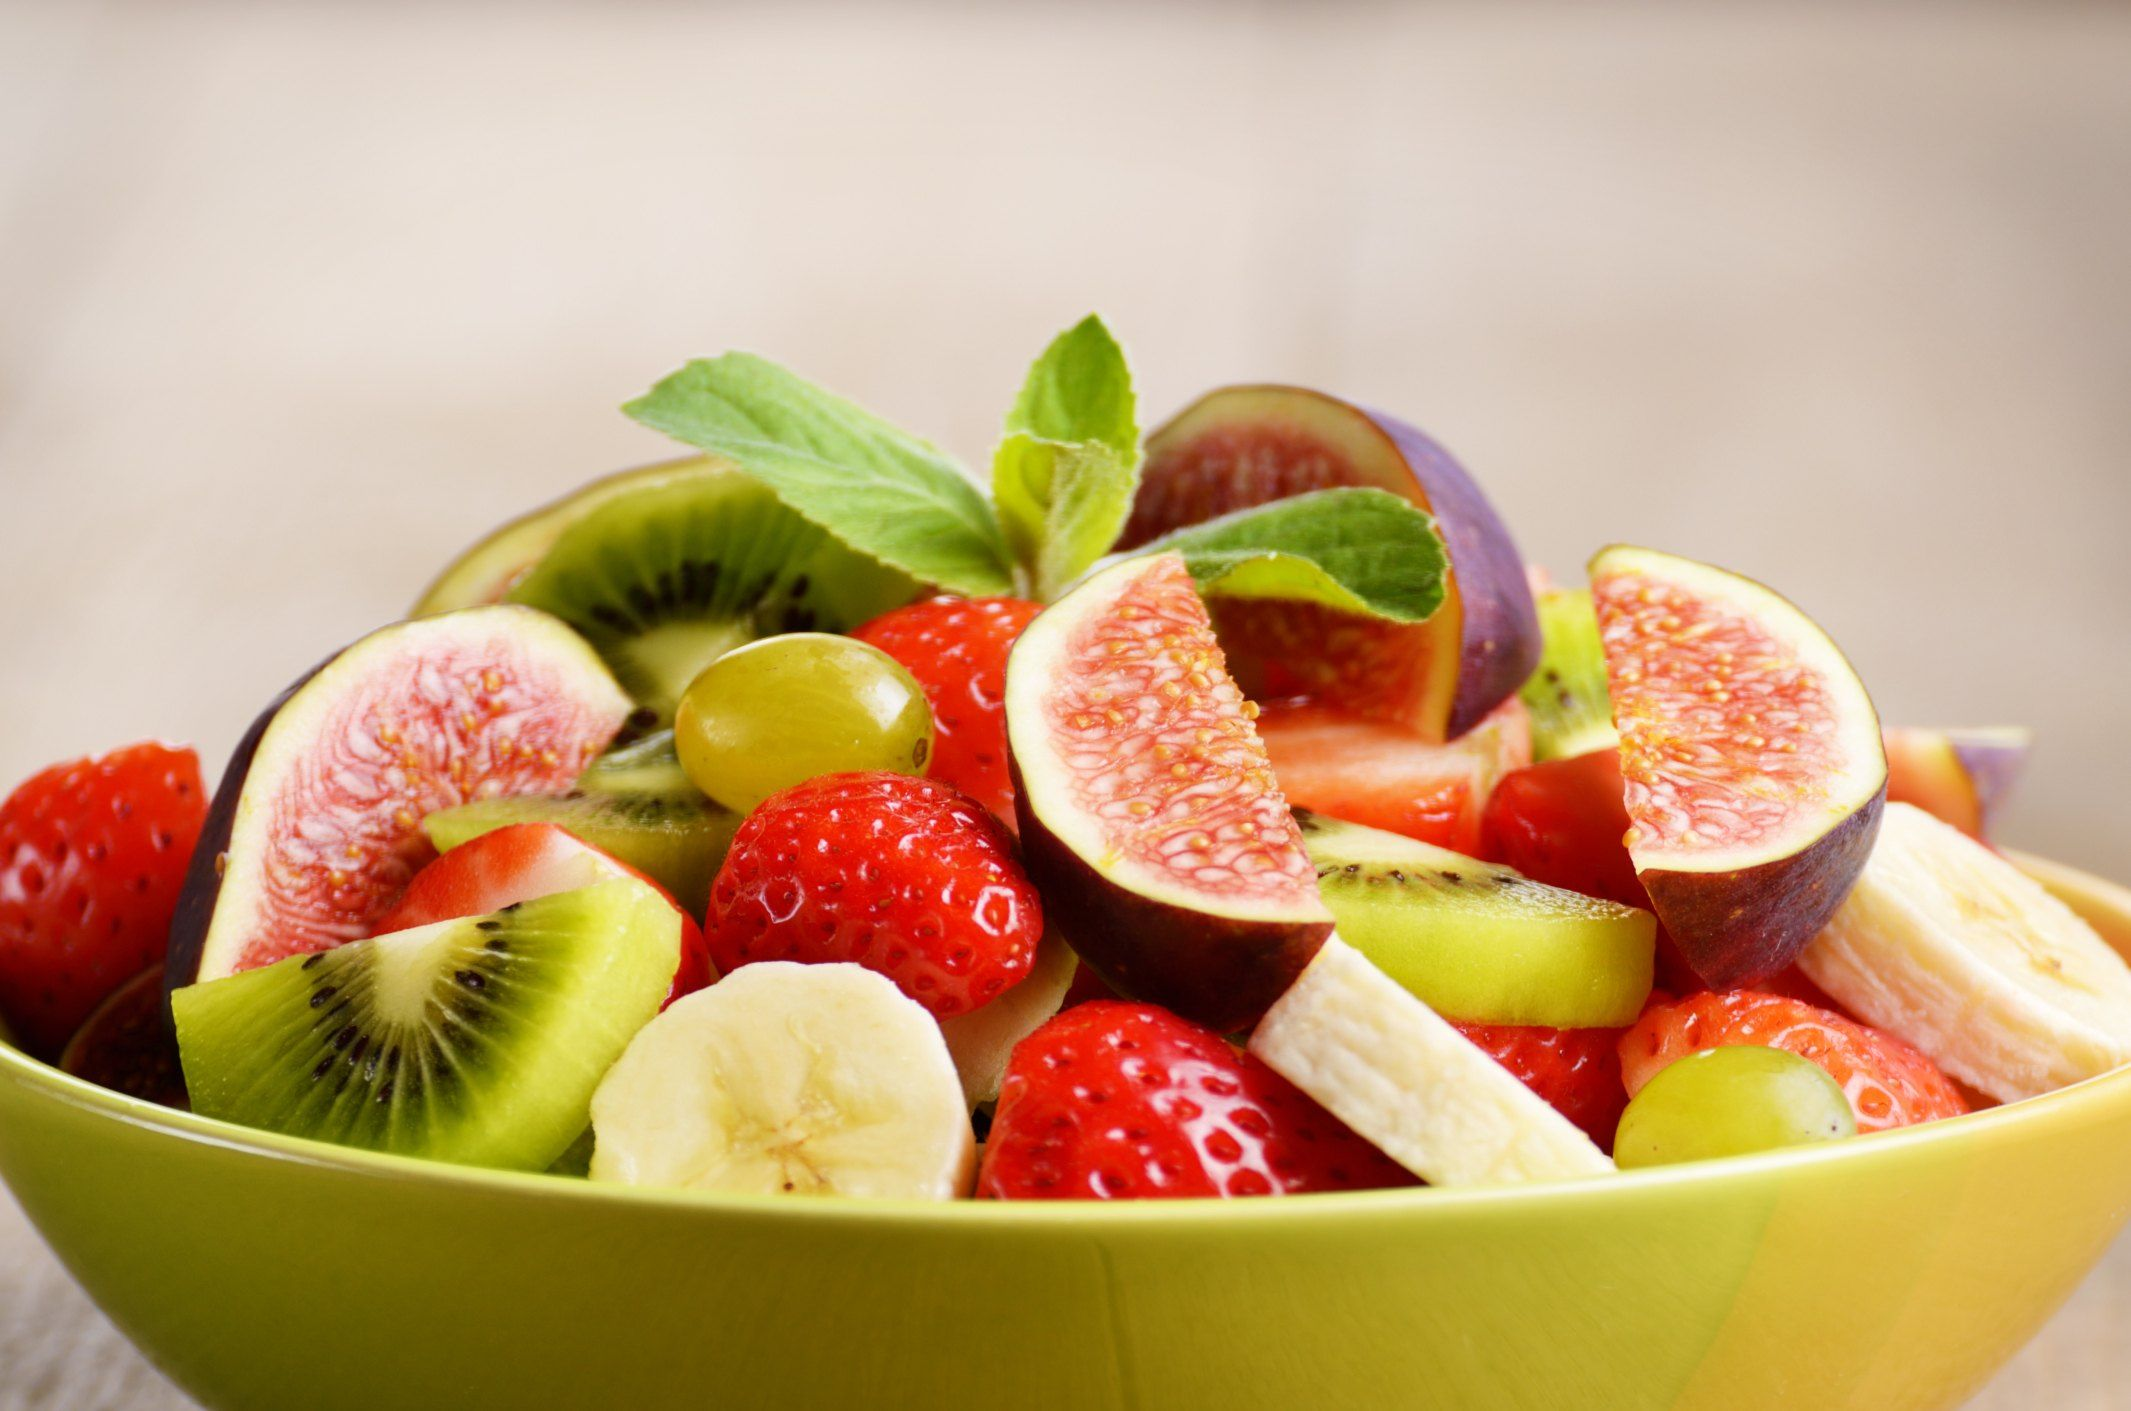 Foods to Eat for a Stent | Livestrong.com